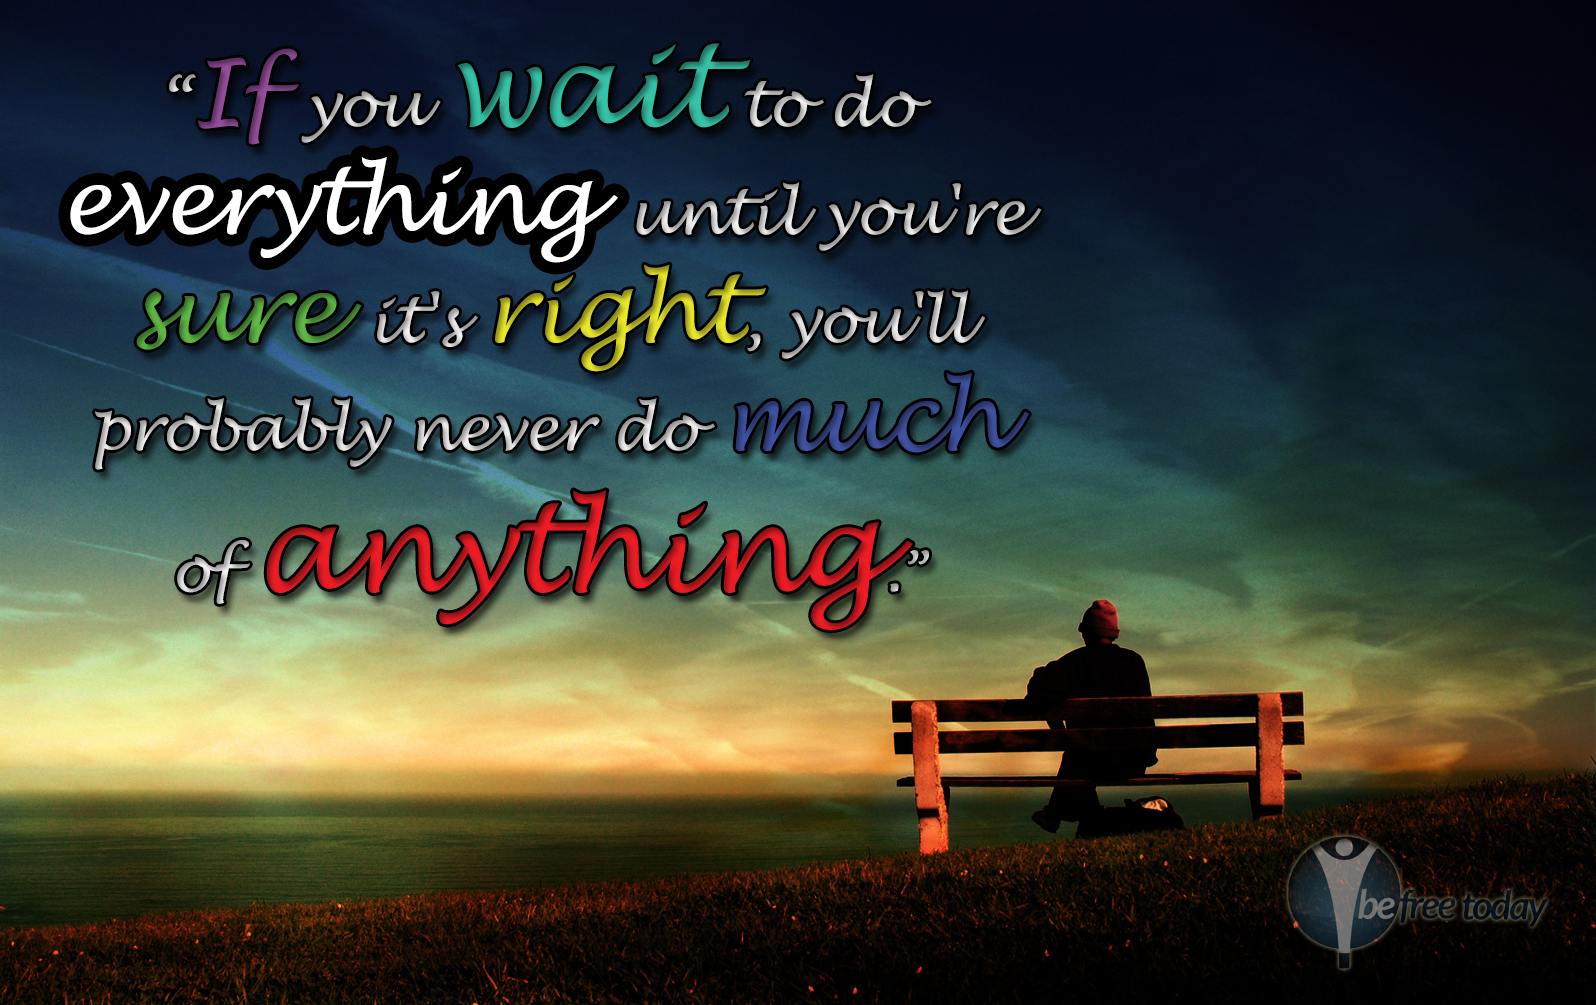 If you wait to do everything until you're sure it's just right, you'll probably never do much of anything.